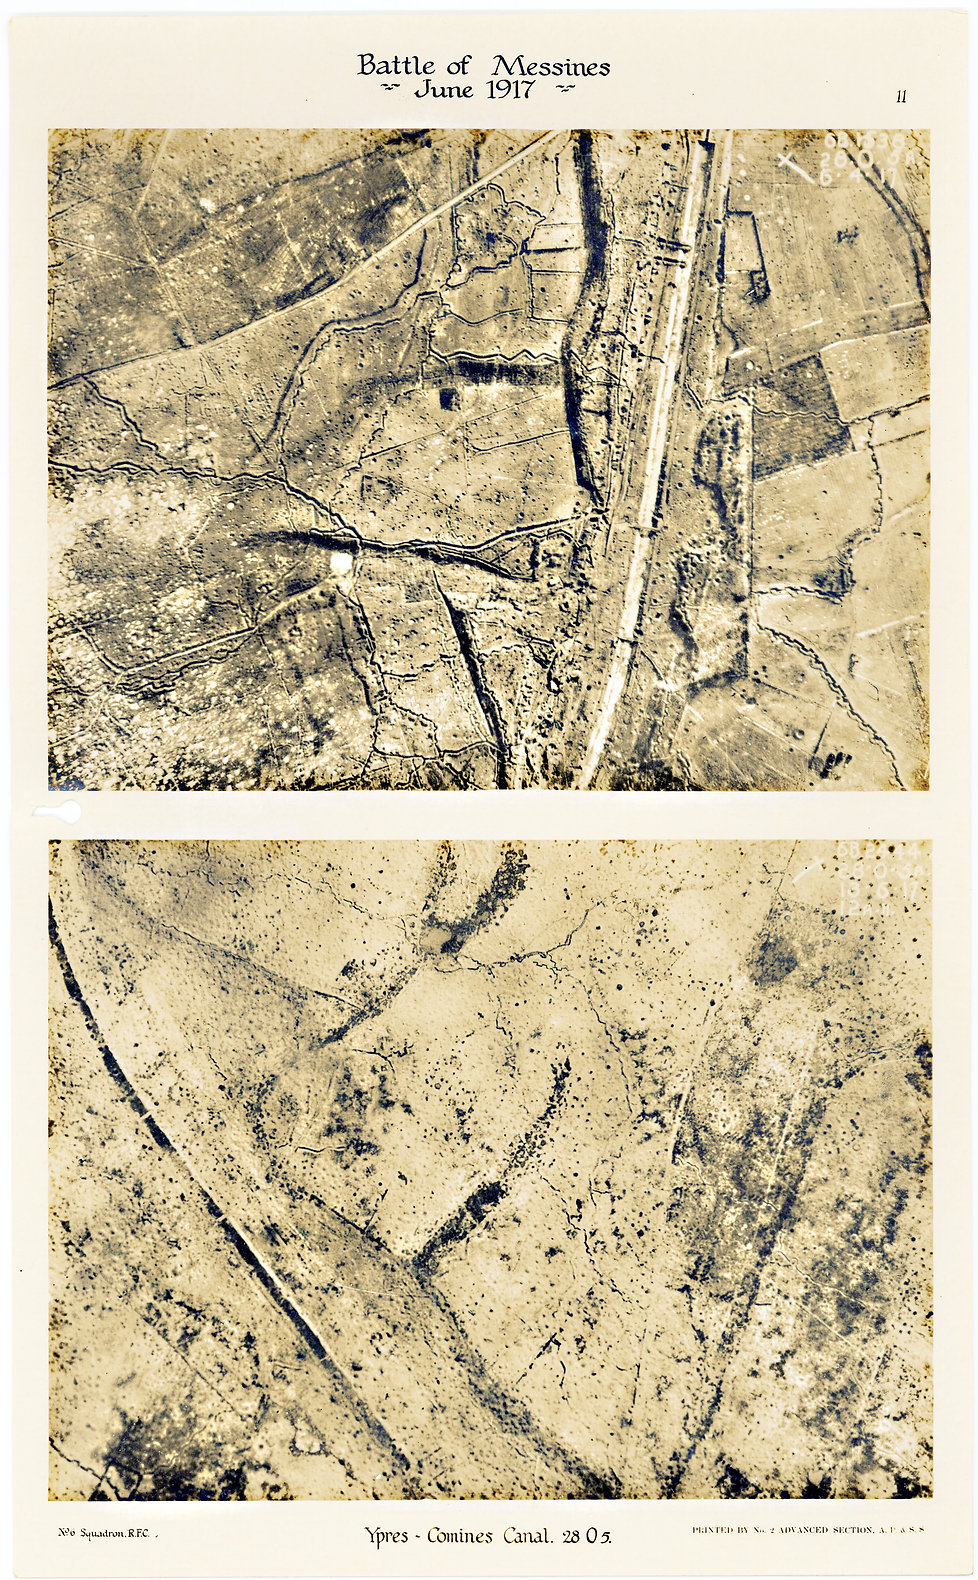 6 Squadron Aerial photos of the Ypres Commines canal, taken before and after the Battle of Messines, 1917